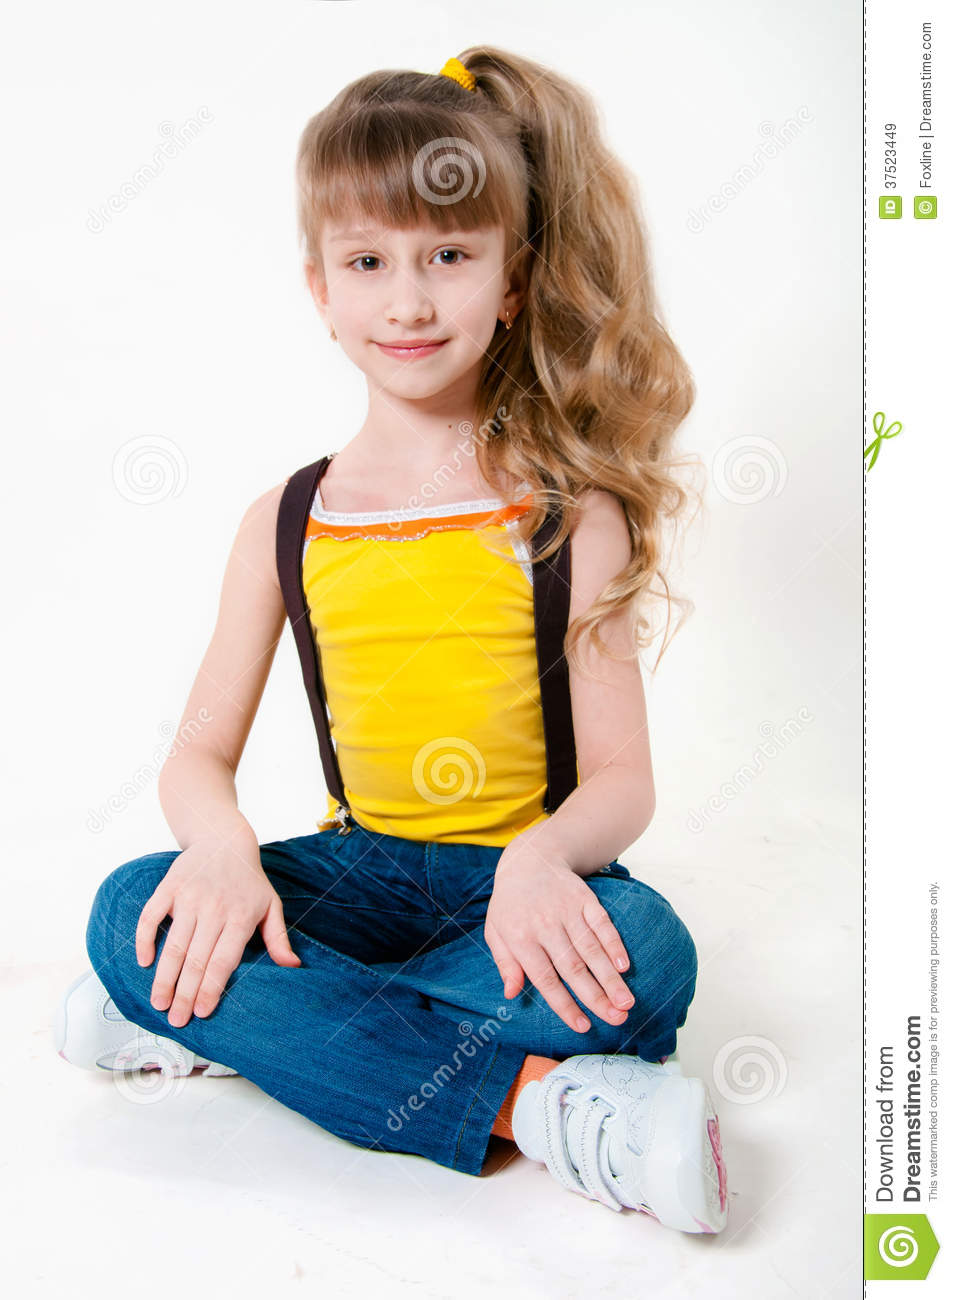 Little Girl Looking Away High-Res Stock Photo - Getty Images